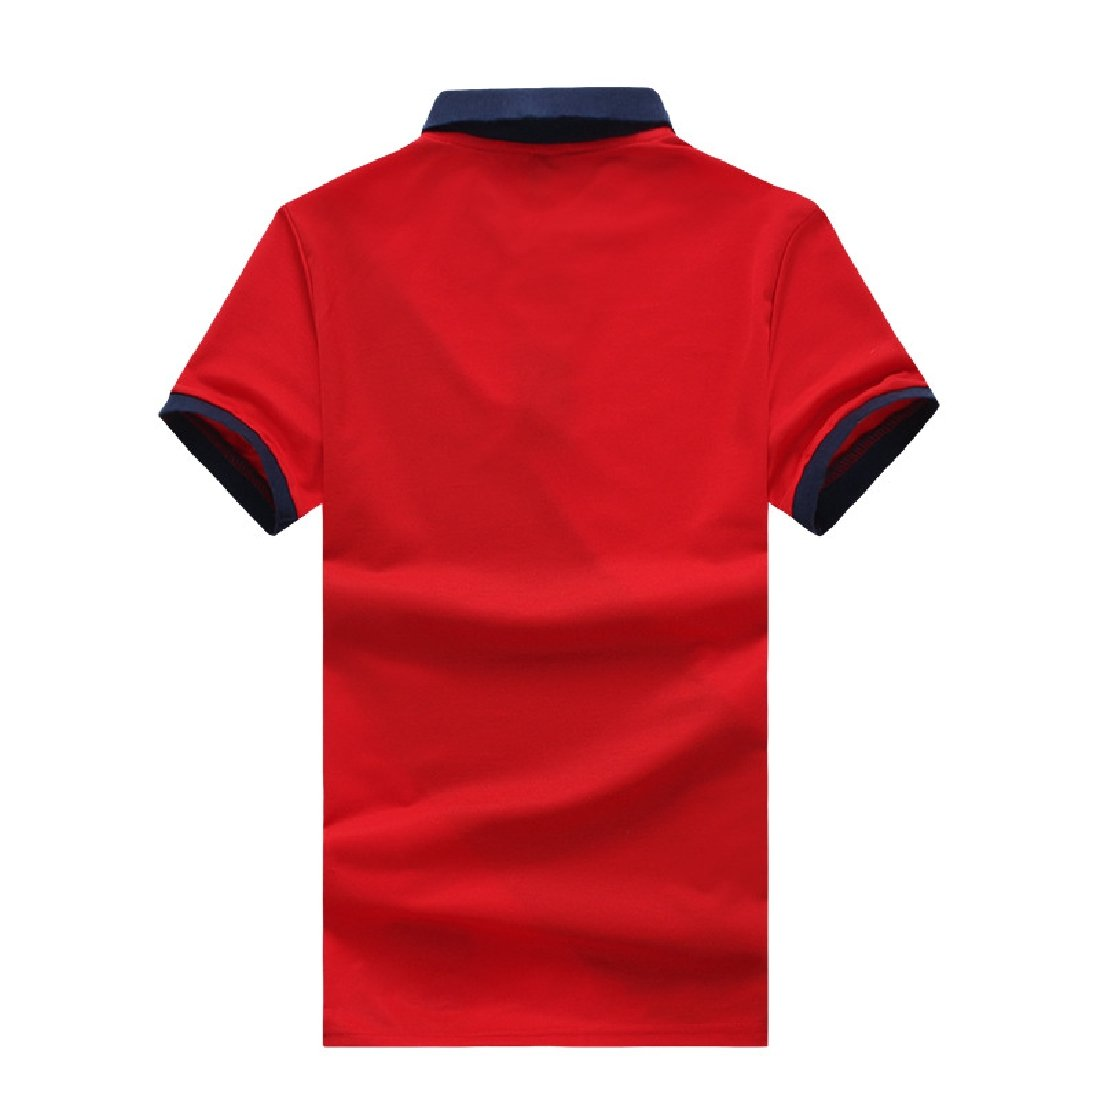 YUNY Mens Summer Short Polo Shirt with Three Colors Combined Fashion Red XS